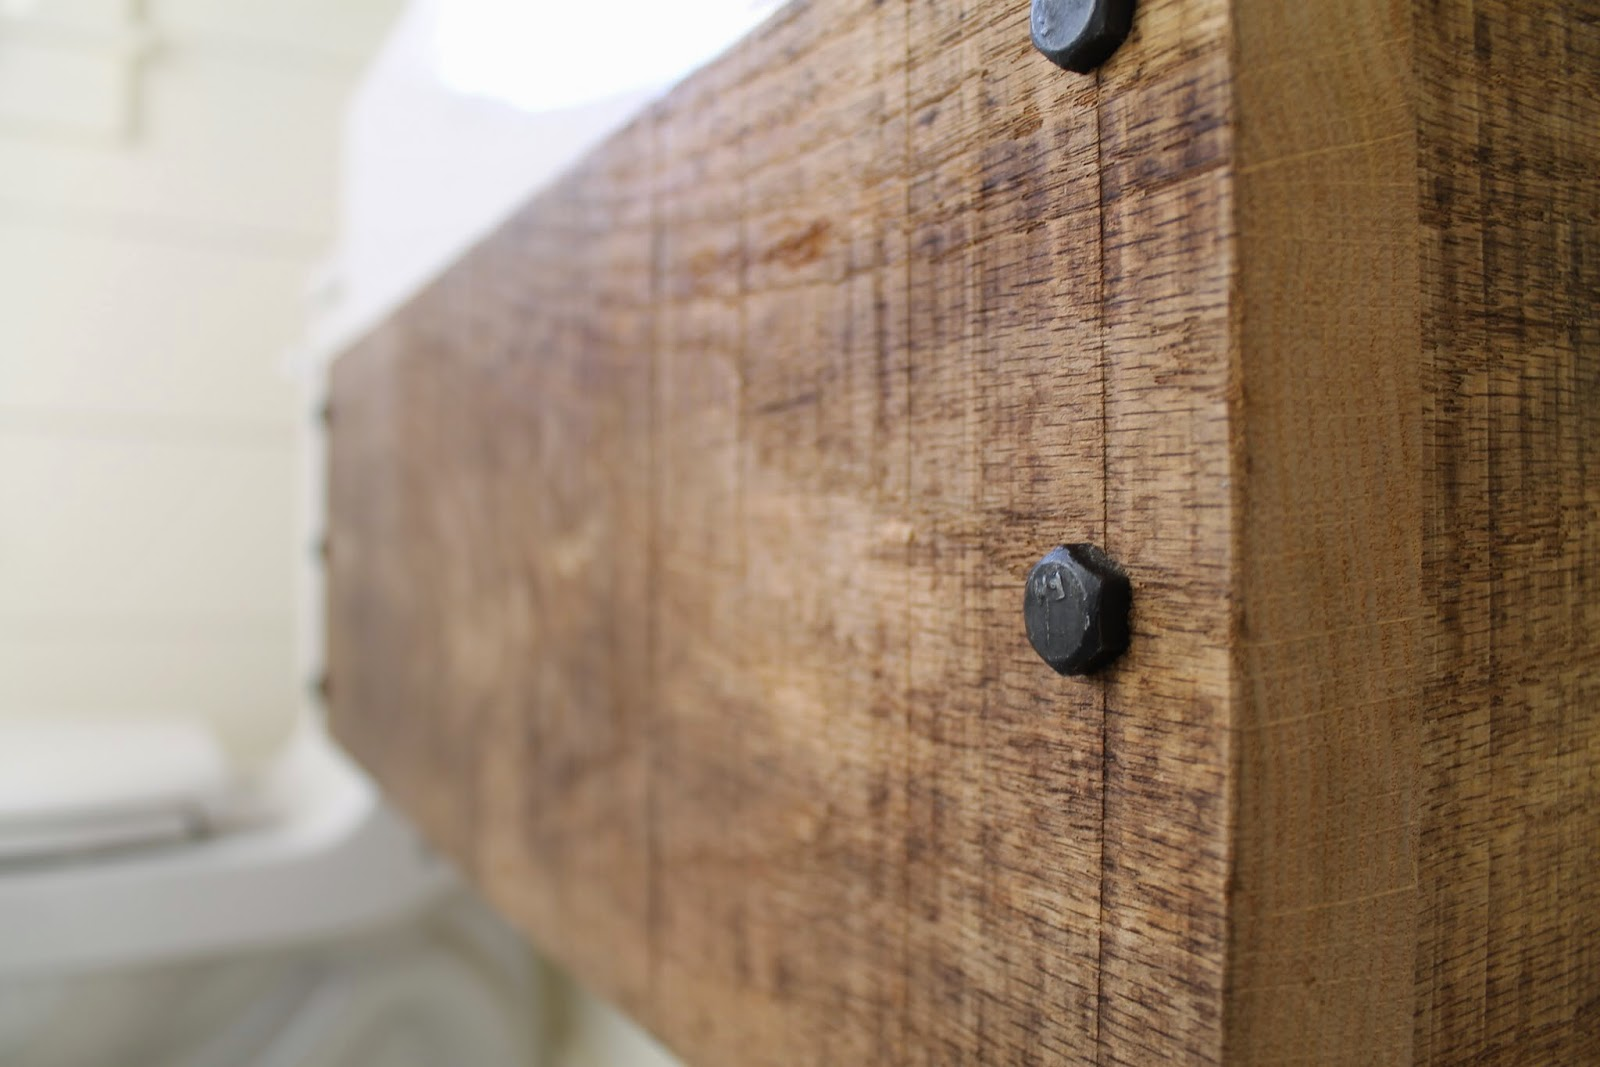 Fancy lag bolts for an industrial style floating reclaimed wood vanity Girl Meets Carpenter featured on